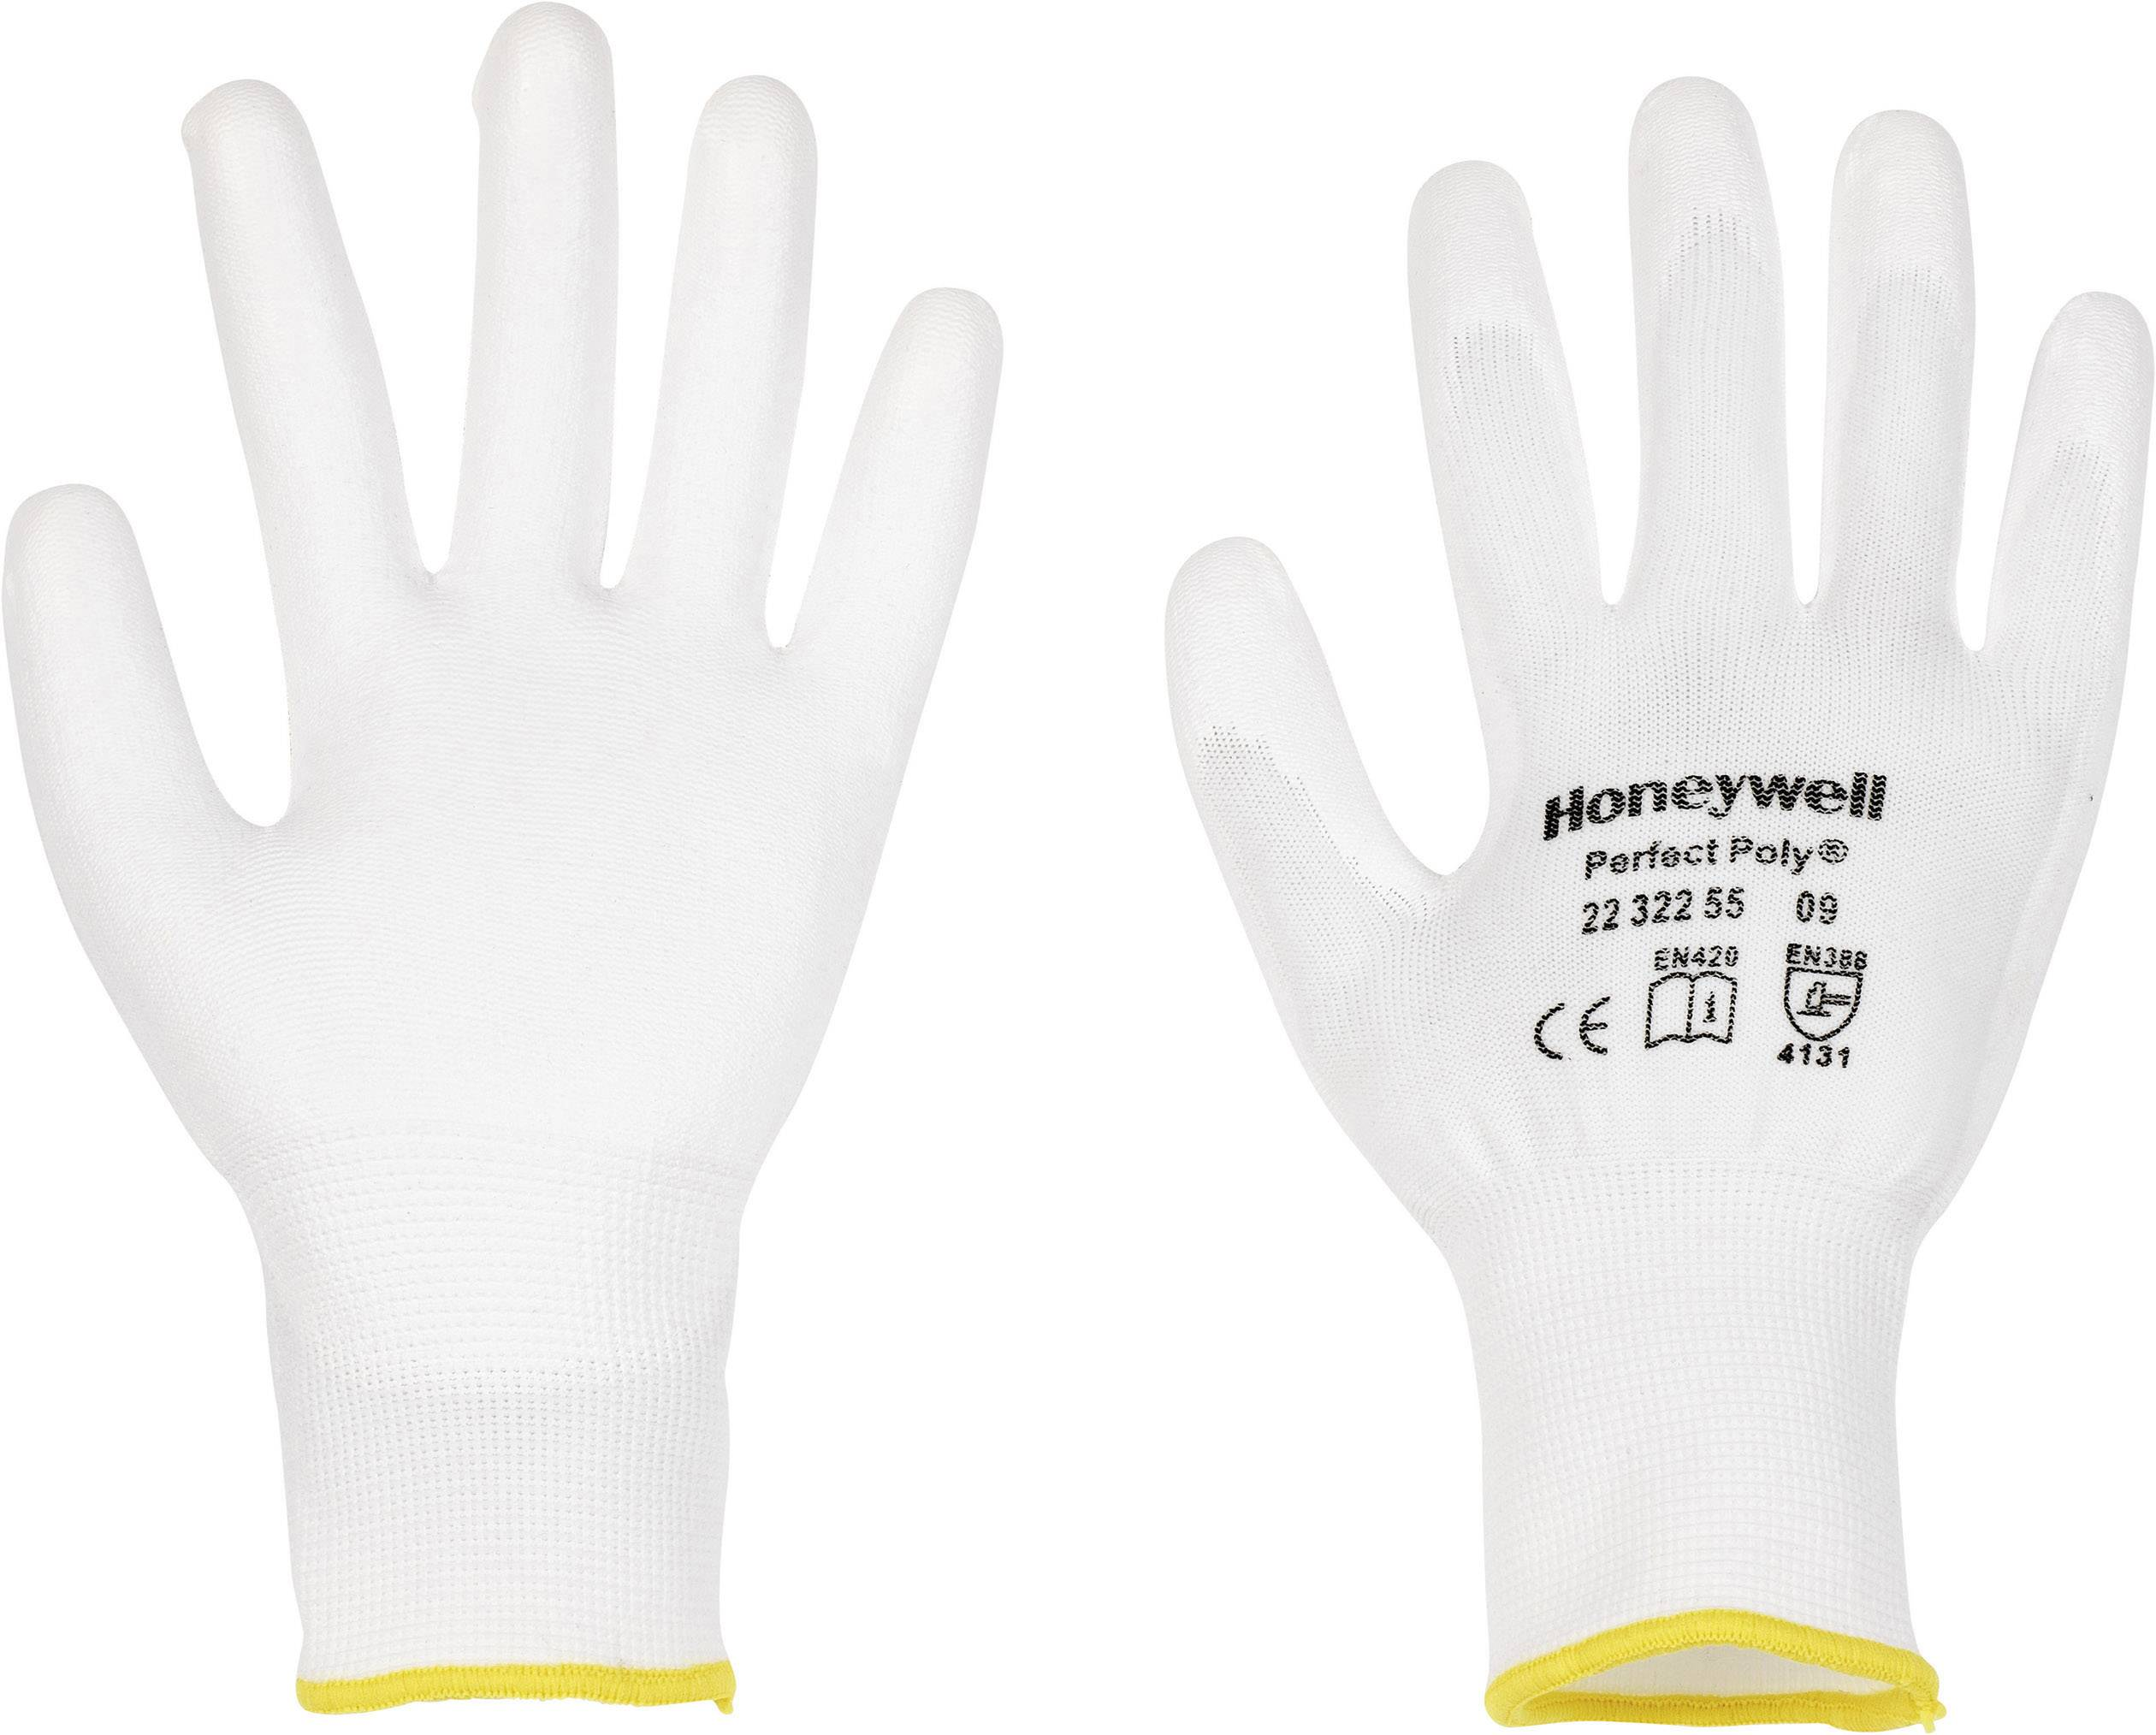 Pracovné rukavice Perfect Fit GANTS BLANCS PERFECTPOLY 2232255, velikost rukavic: 10, XL